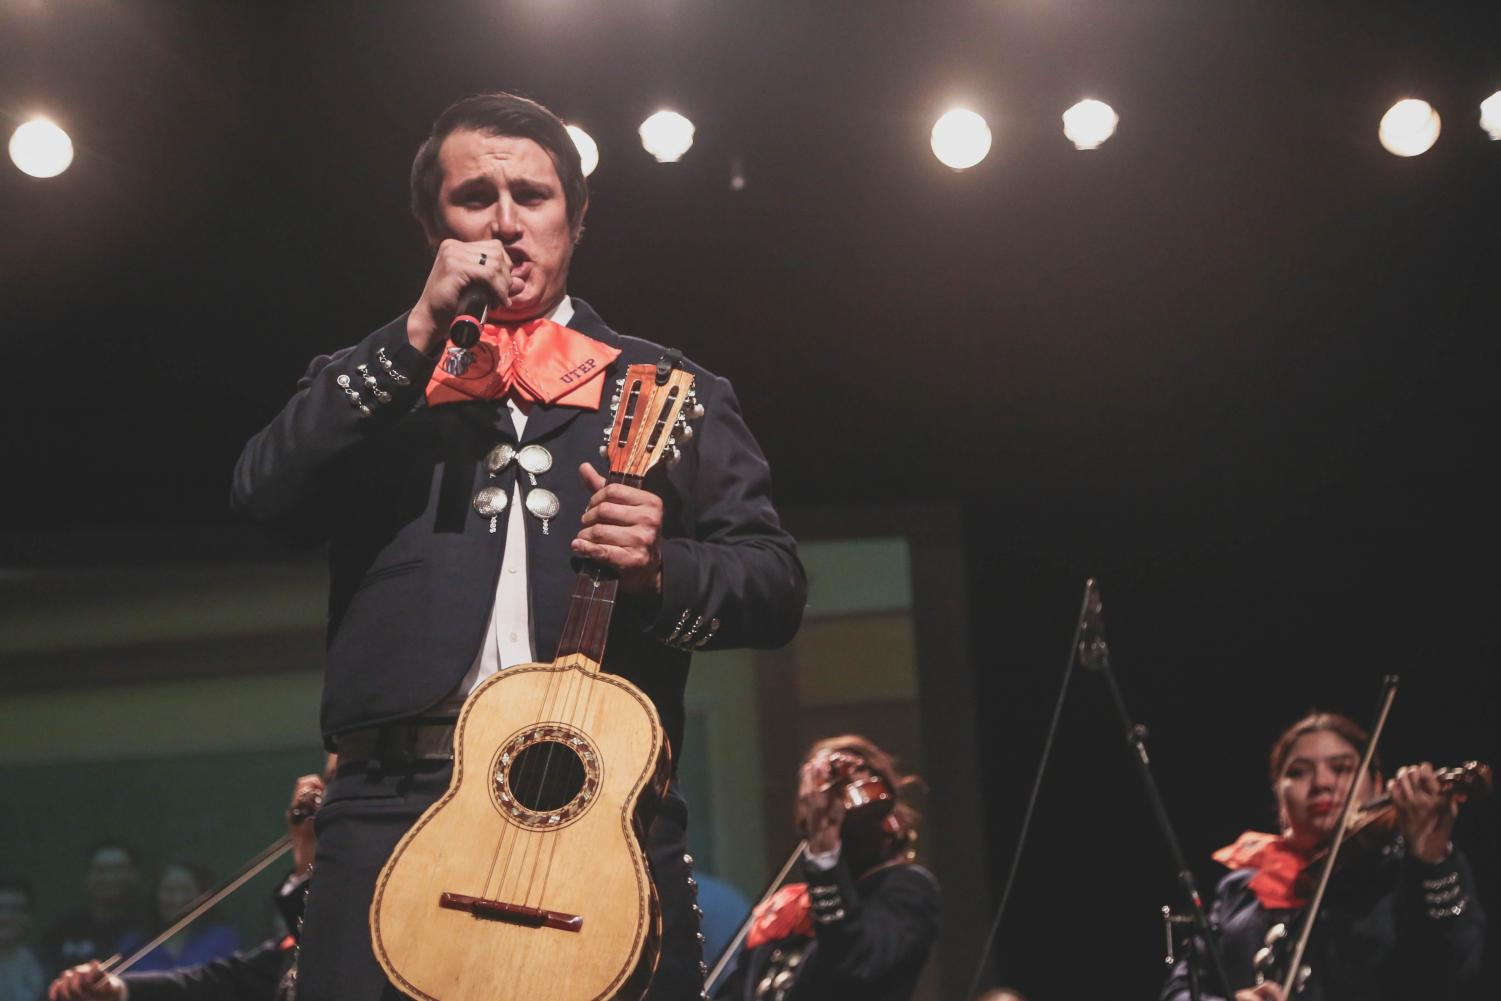 Mariachi+los+Mineros+play+some+songs+before+congressman+Beto+O%27Rourke+takes+the+stage+at+the+Magoffin+Auditorium+for+his+final+rally+before+election+day+on+Monday%2C+Nov.+5.+